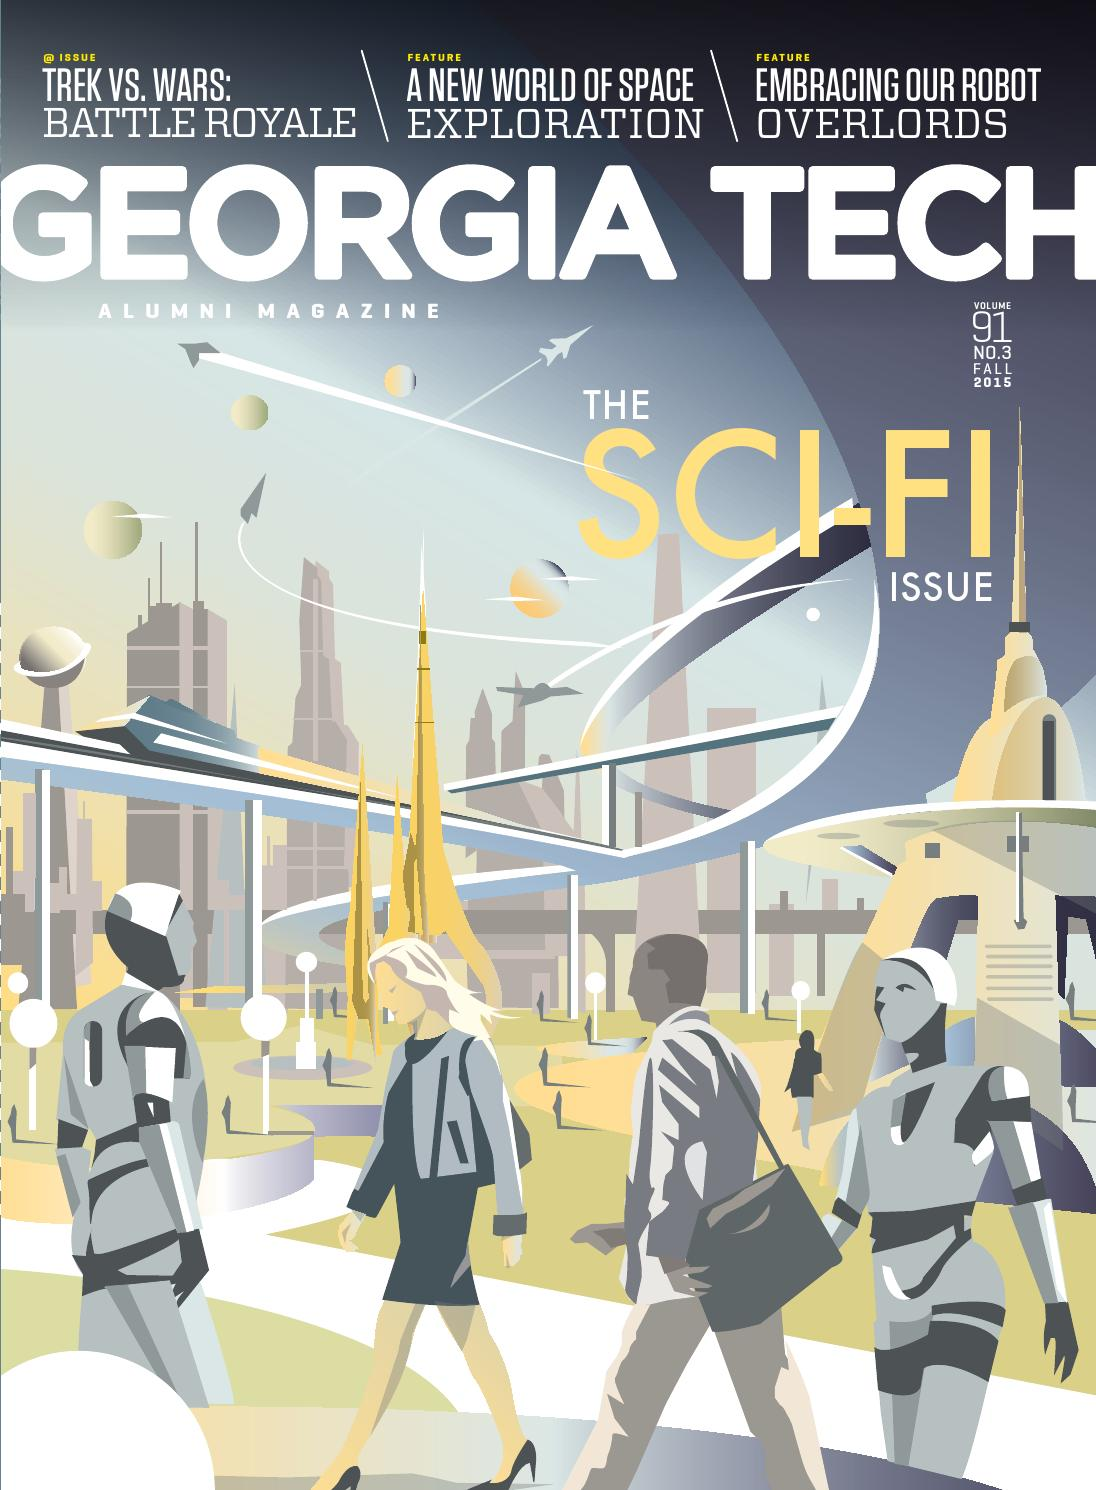 Georgia Tech Alumni Magazine  Vol      No         by Georgia Tech Alumni Association   issuu Madenlimetal com